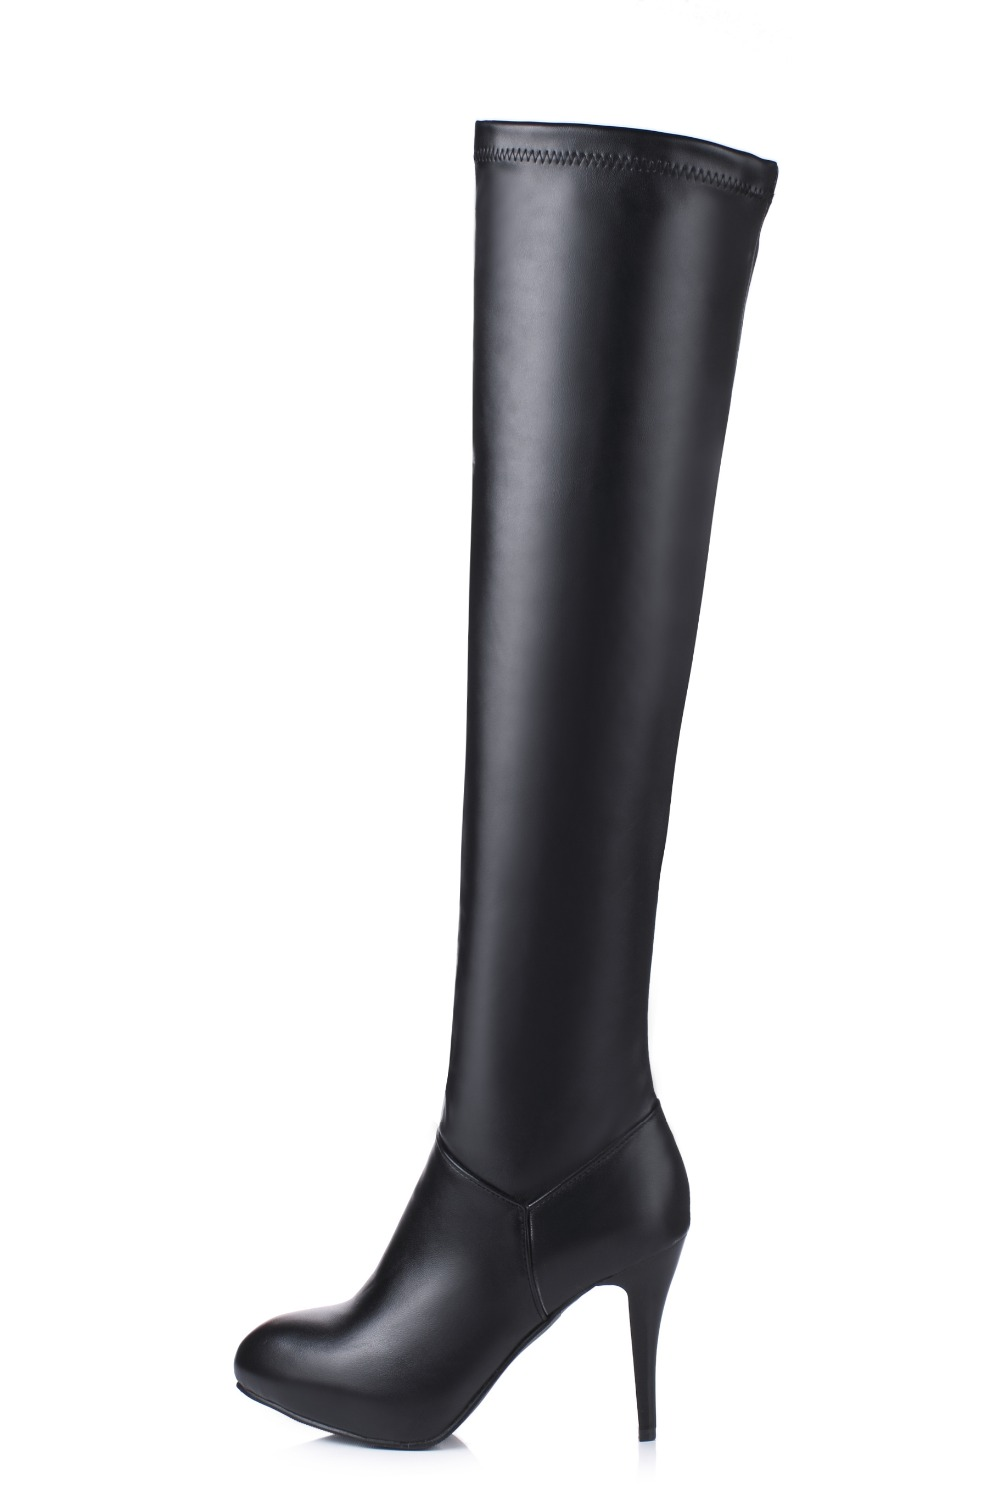 New Sexy Women Over the Knee Boots Nice Pointed Toe Thin Heels Winter Boots Elegant Brown White Shoes Woman Plus Size 3.5-13 customizable fashion women knee high boots sexy pointed toe thin heels leopard boots shoes woman plus size 4 15